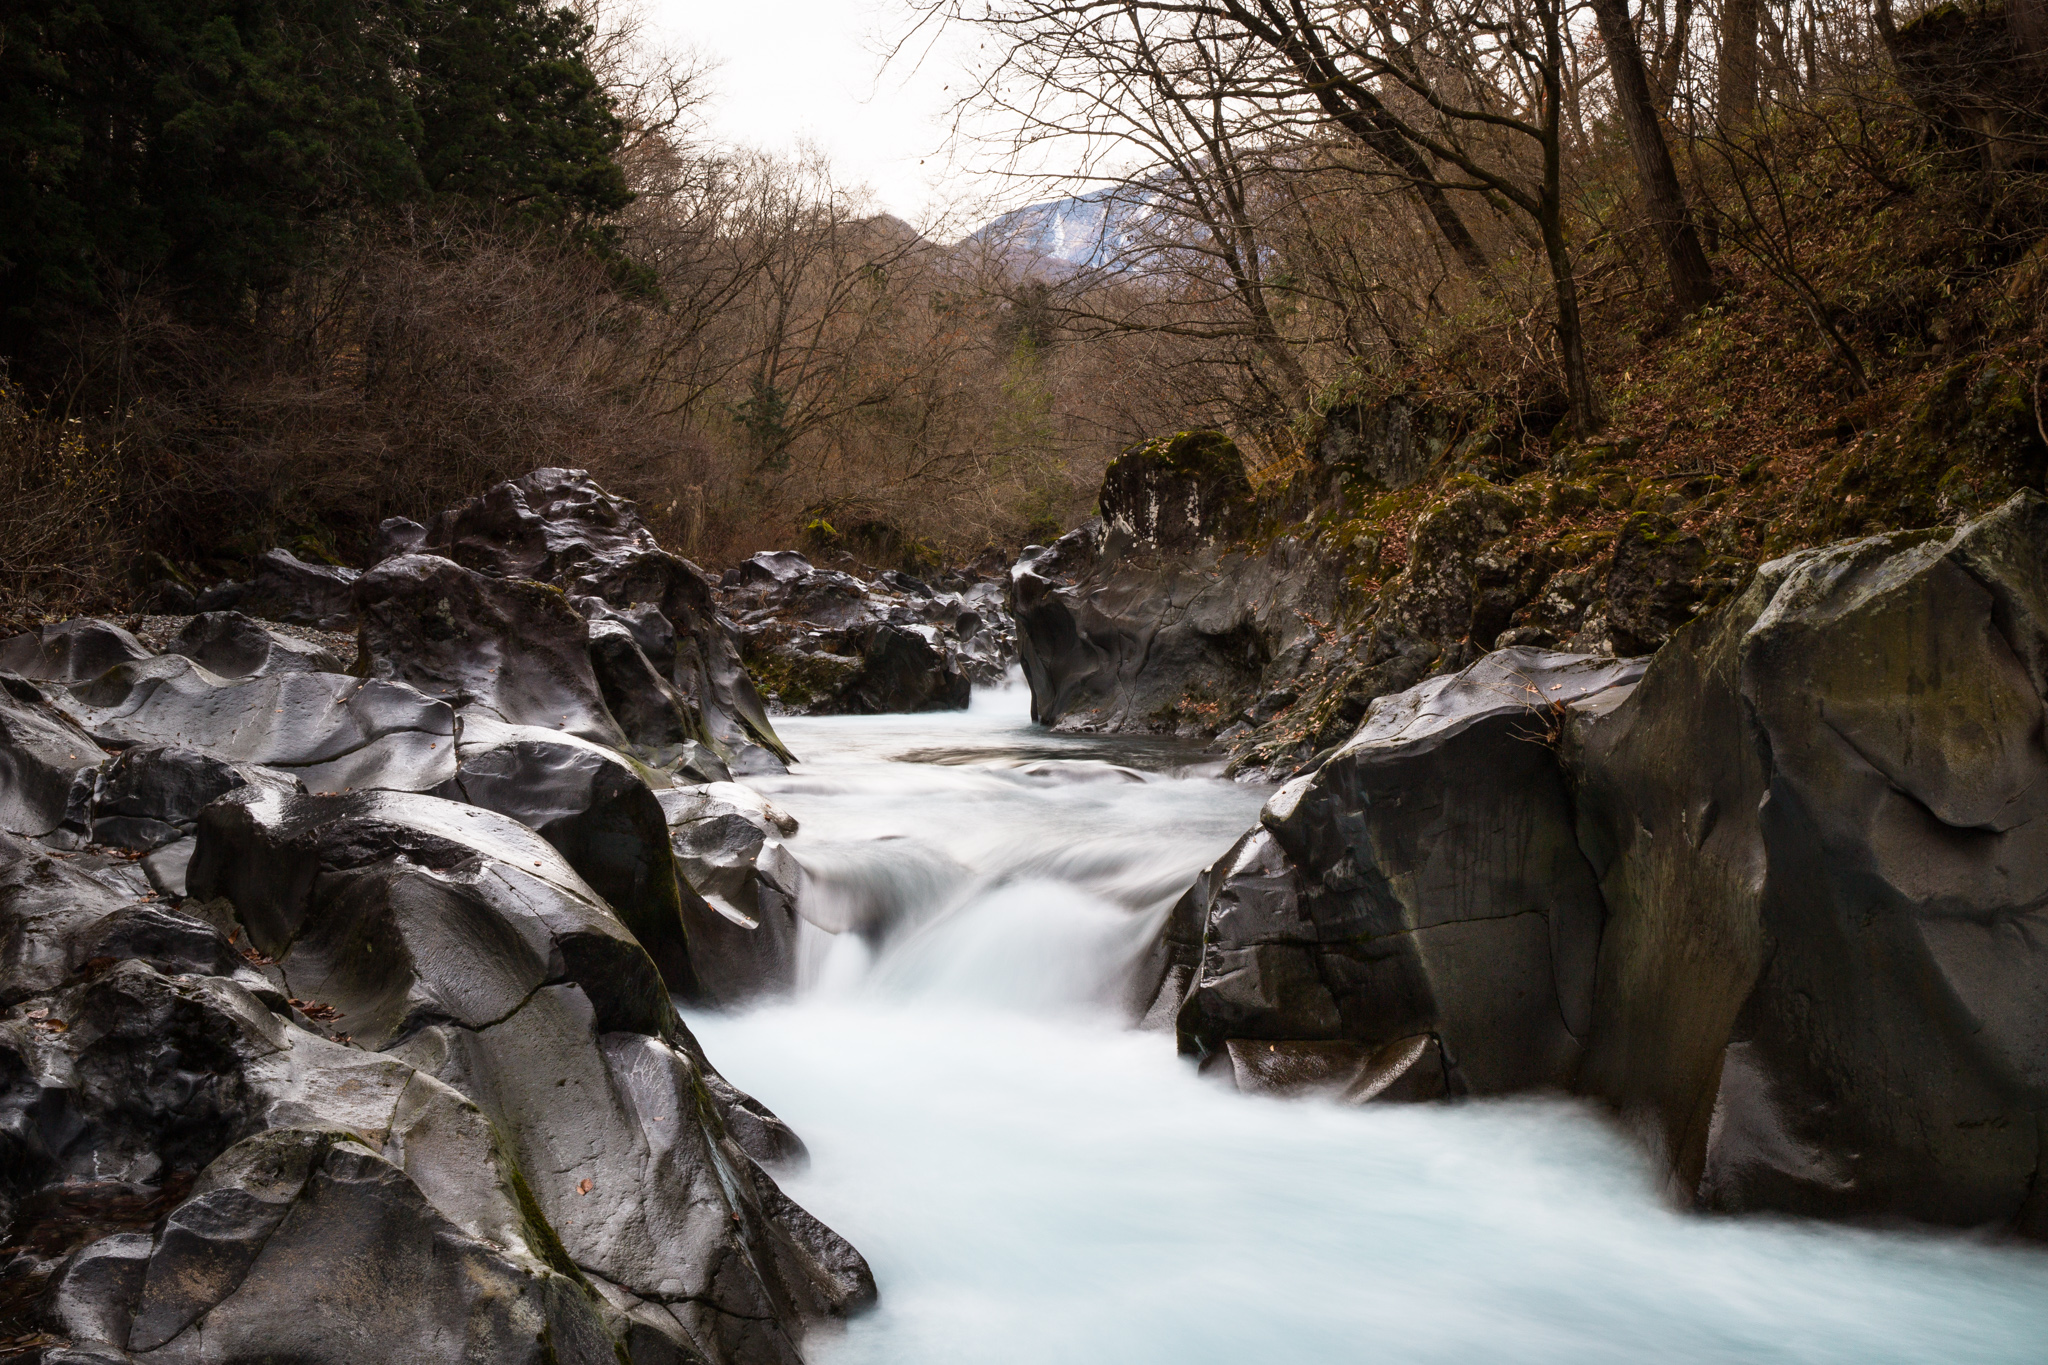 6601-japan-nature-frozen-time.jpg